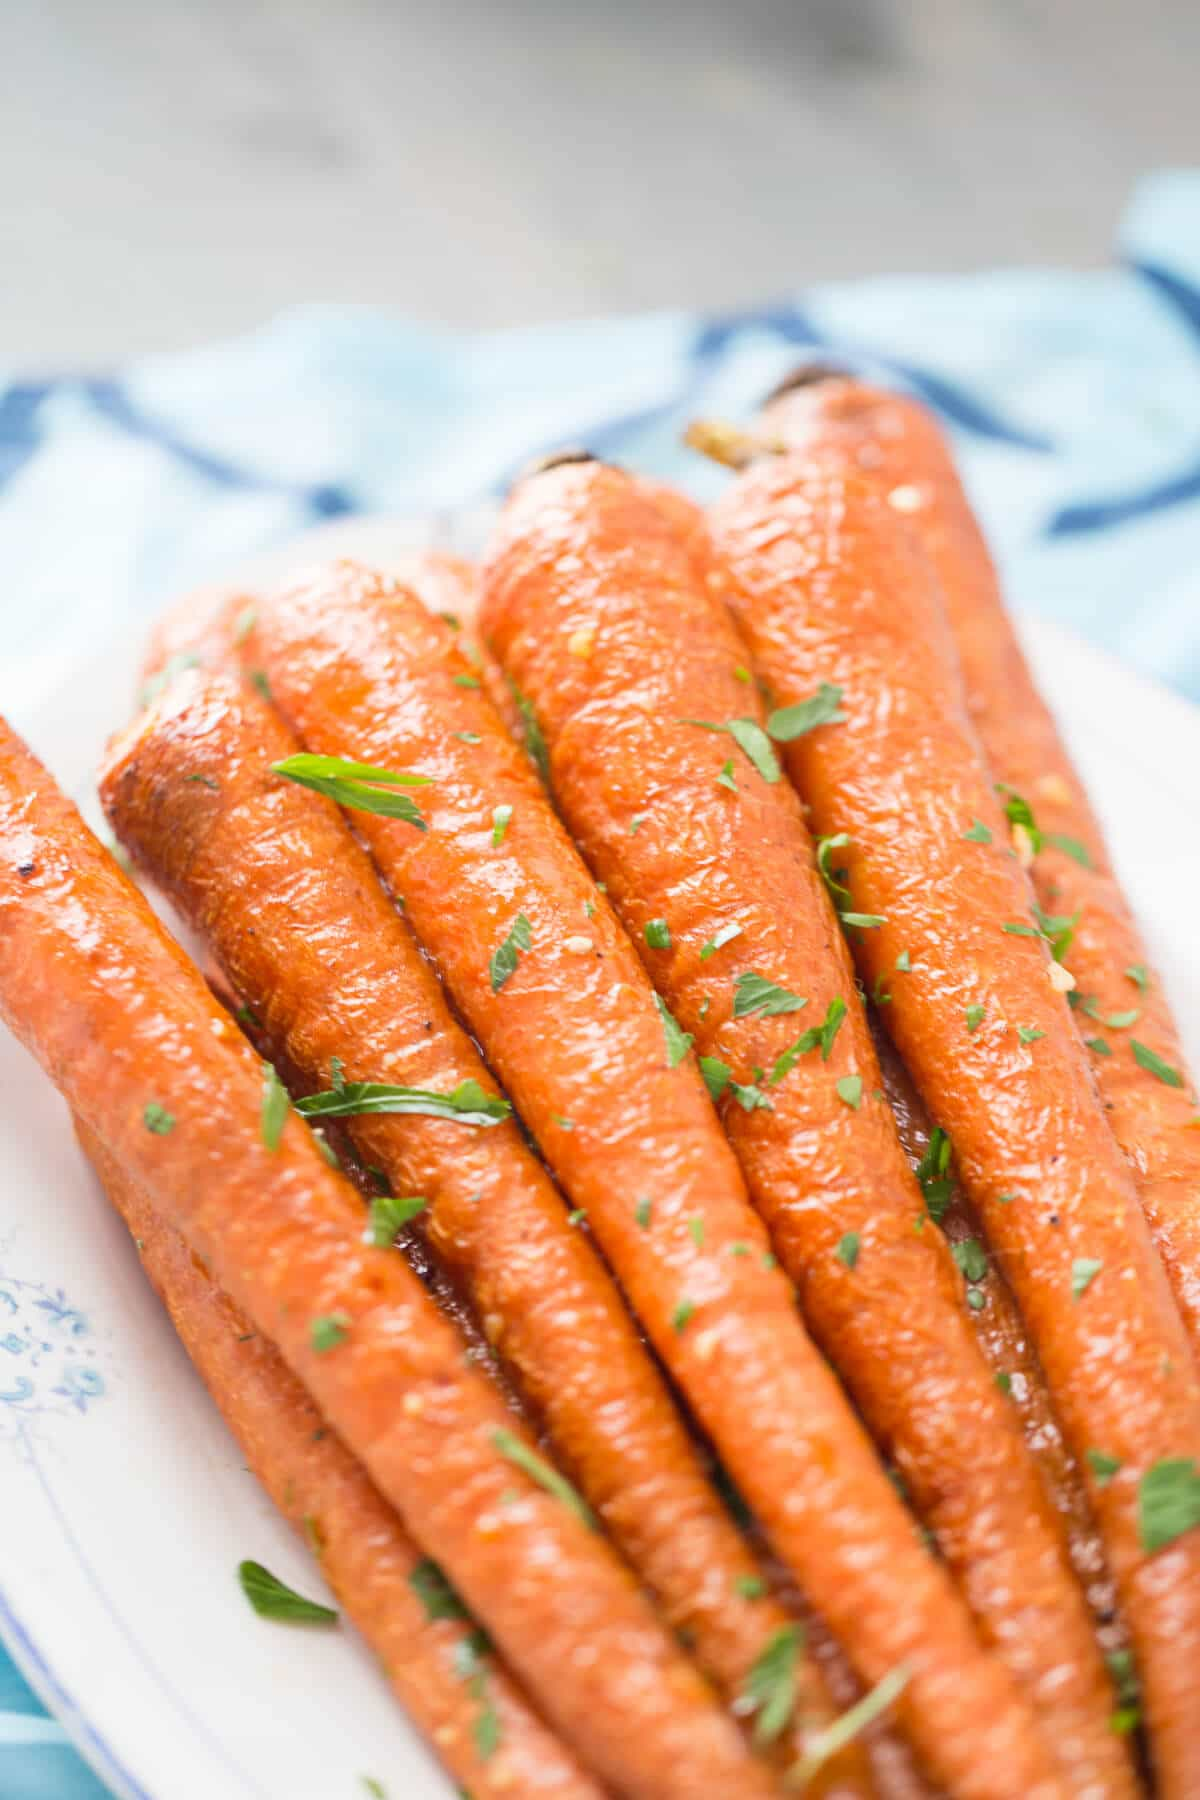 Oven roasted carrots make an easy side dish! They so sweet and delicious!